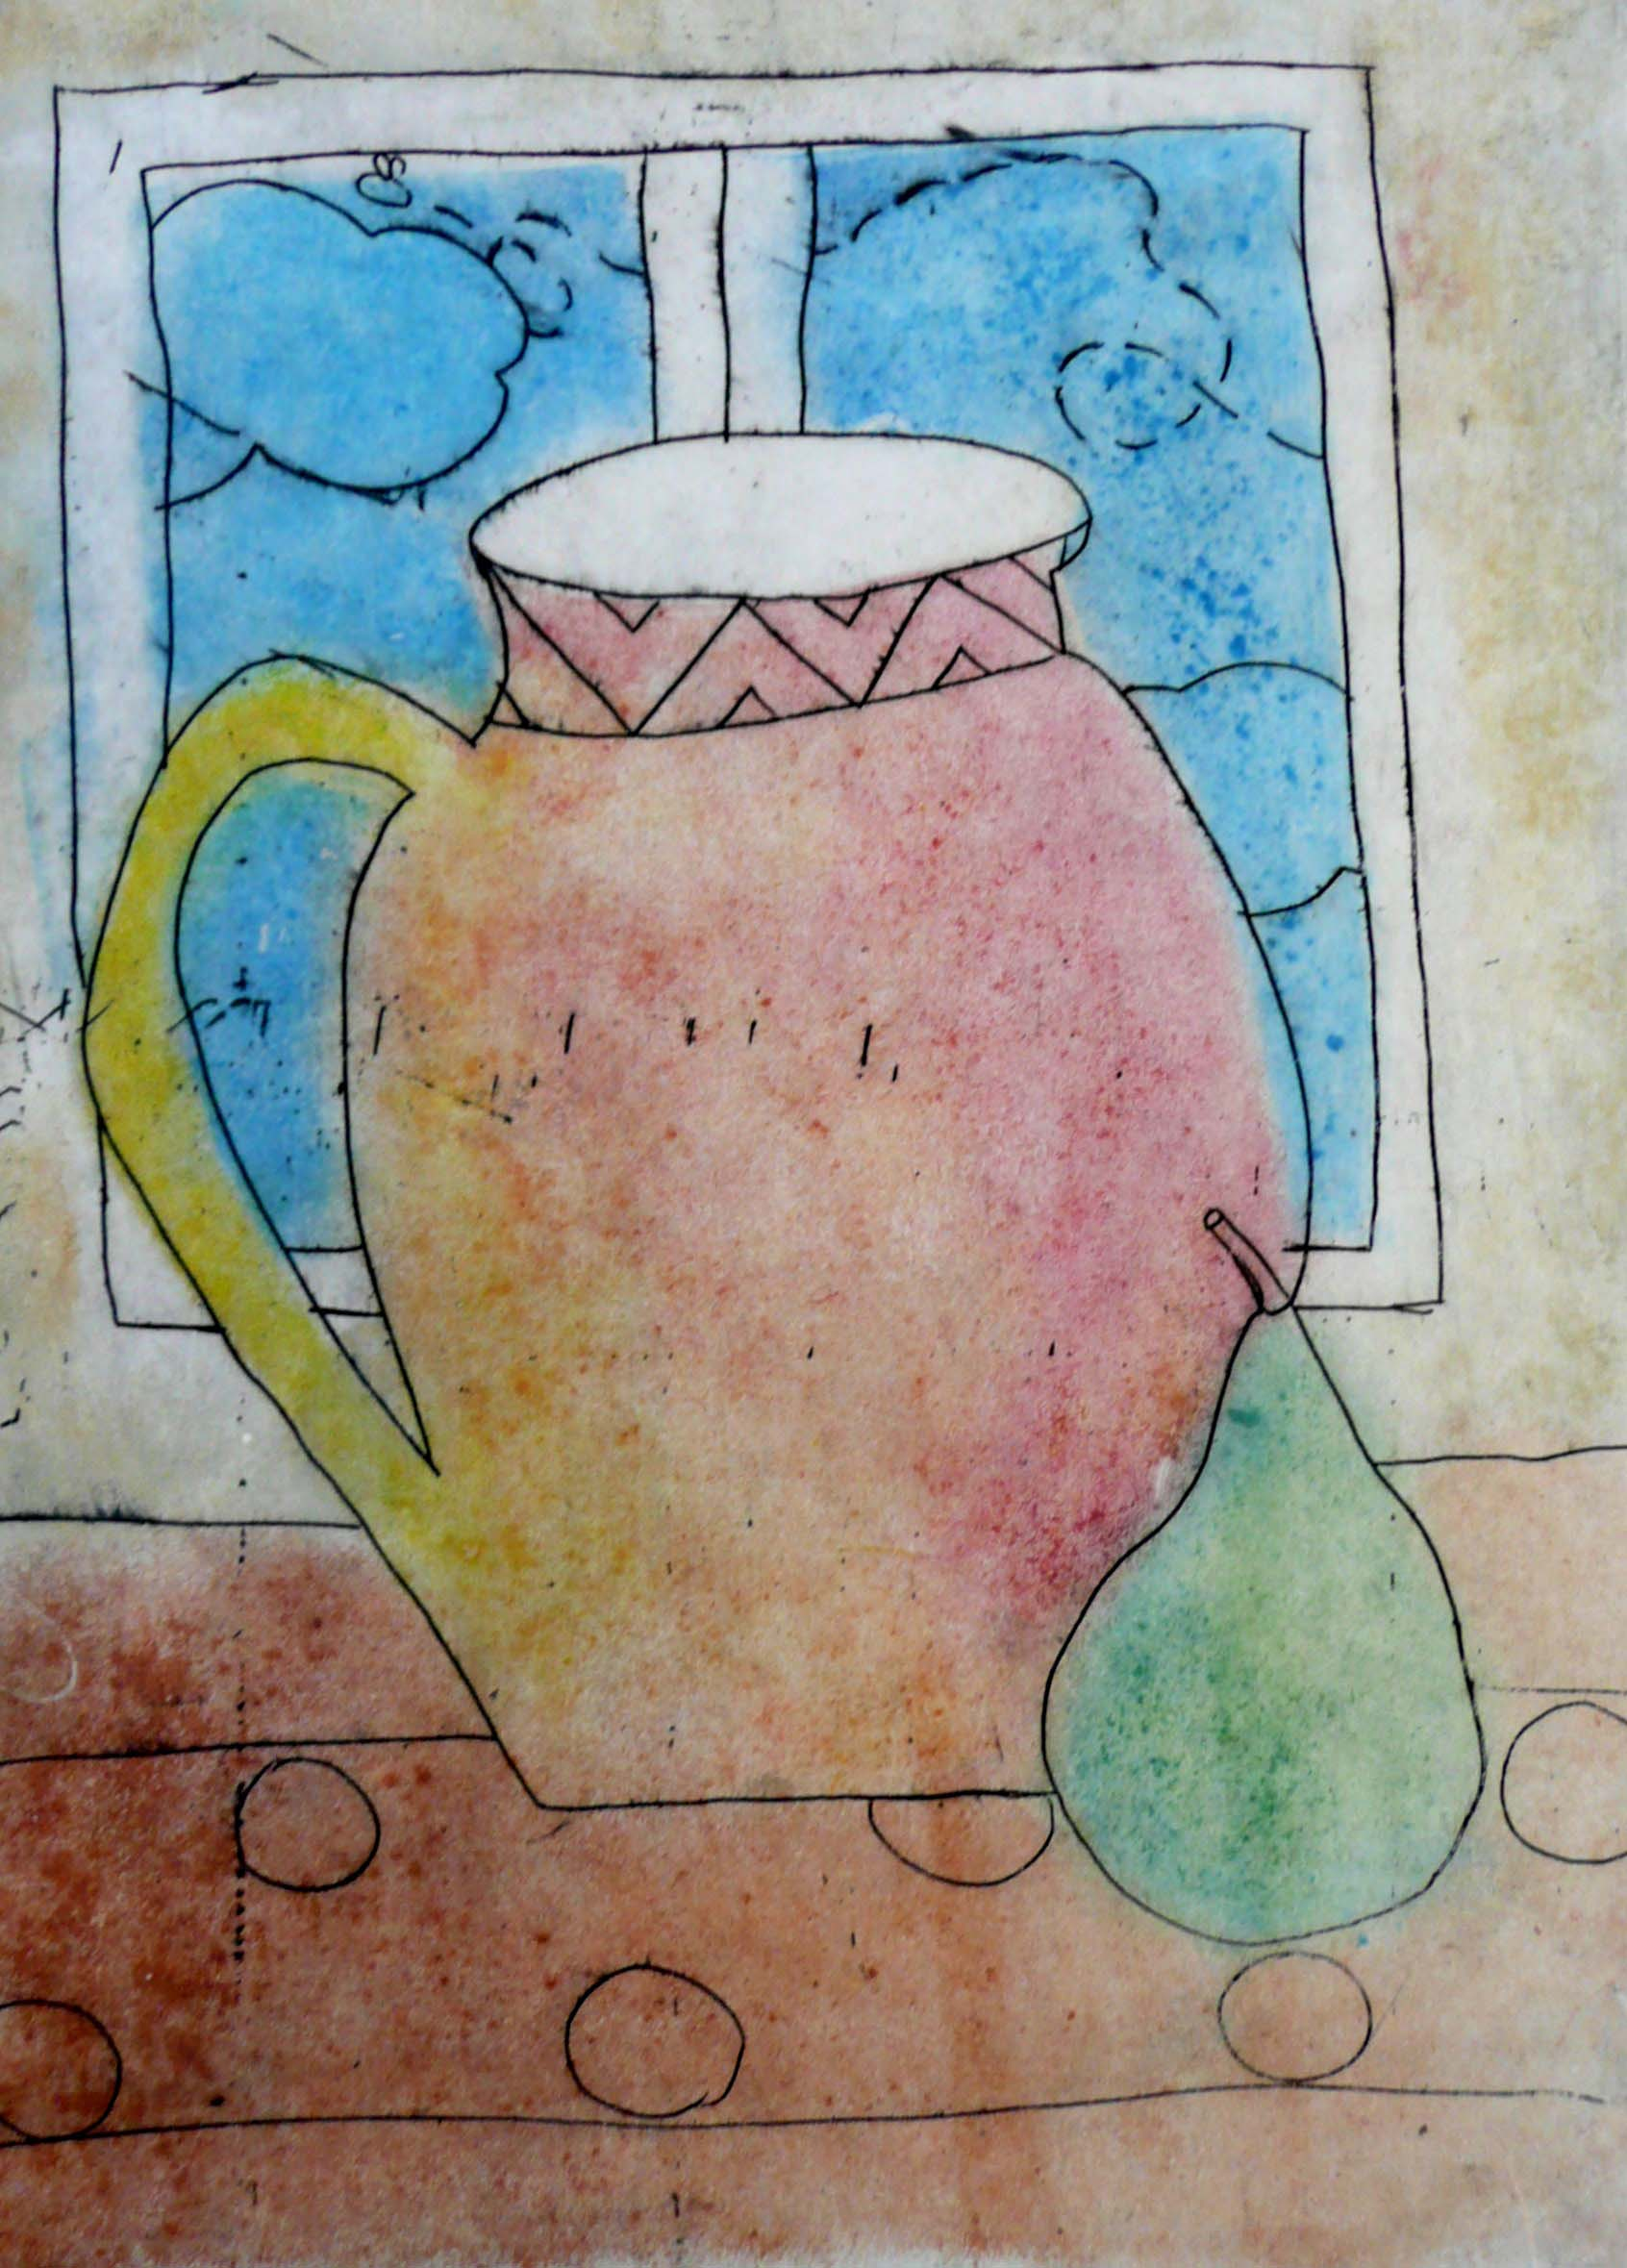 Drypoint etching, monotype